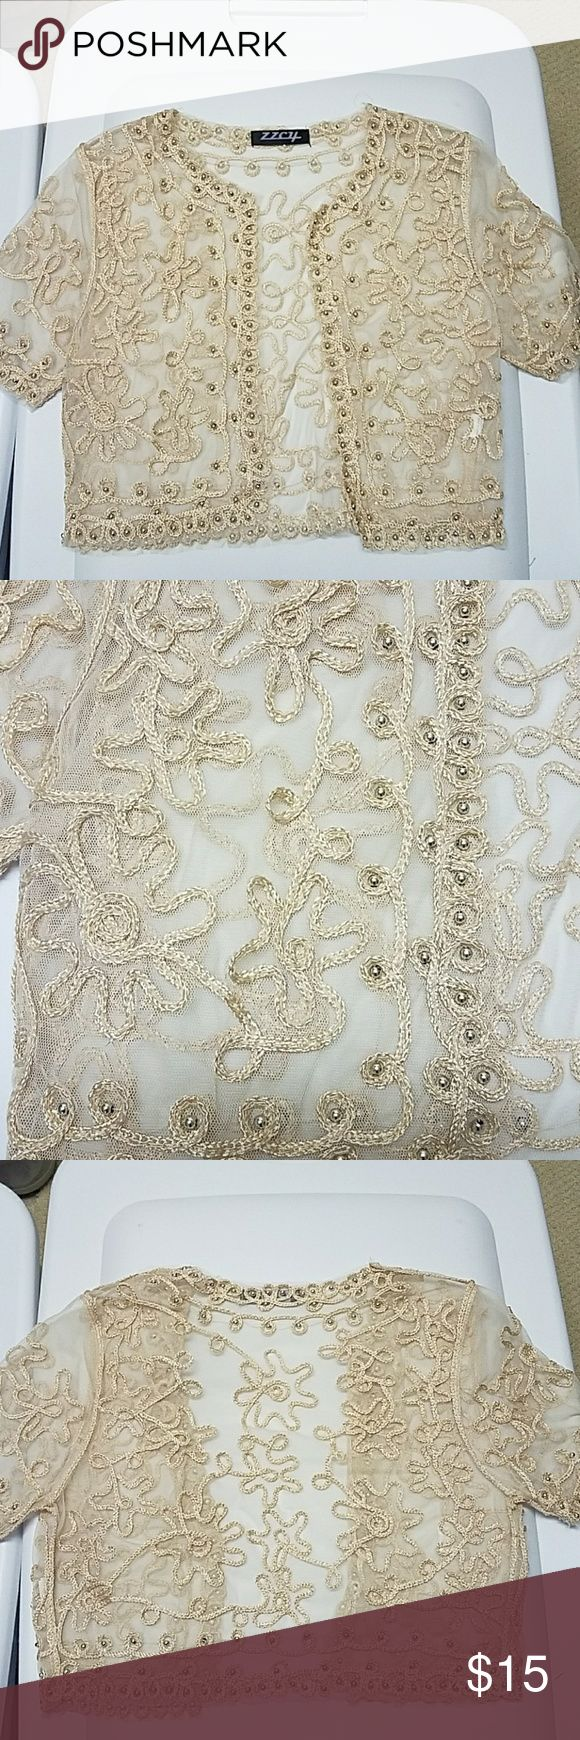 Open beaded gold cardigan.  Size Small Great for a special occasion.  Wear over a dress. It's a size small,  even though there is no label showing the size.  Wore once.  In excellent condition.  No beads have fallen off. Sweaters Cardigans